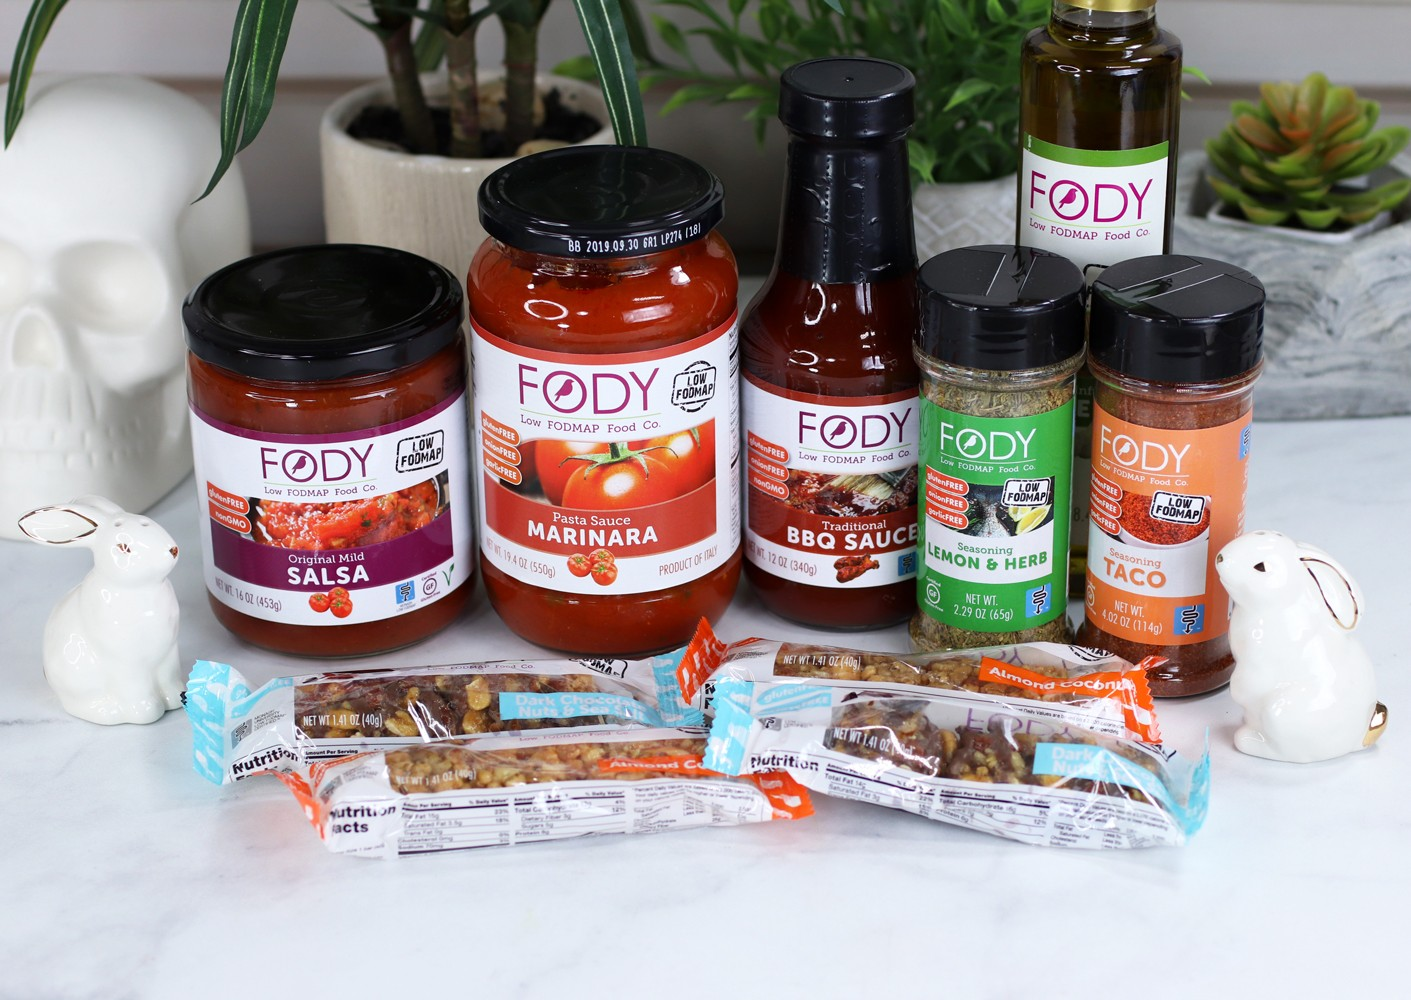 Fody Low FODMAP Foods Review by Los Angeles Heath Blogger My Beauty Bunny